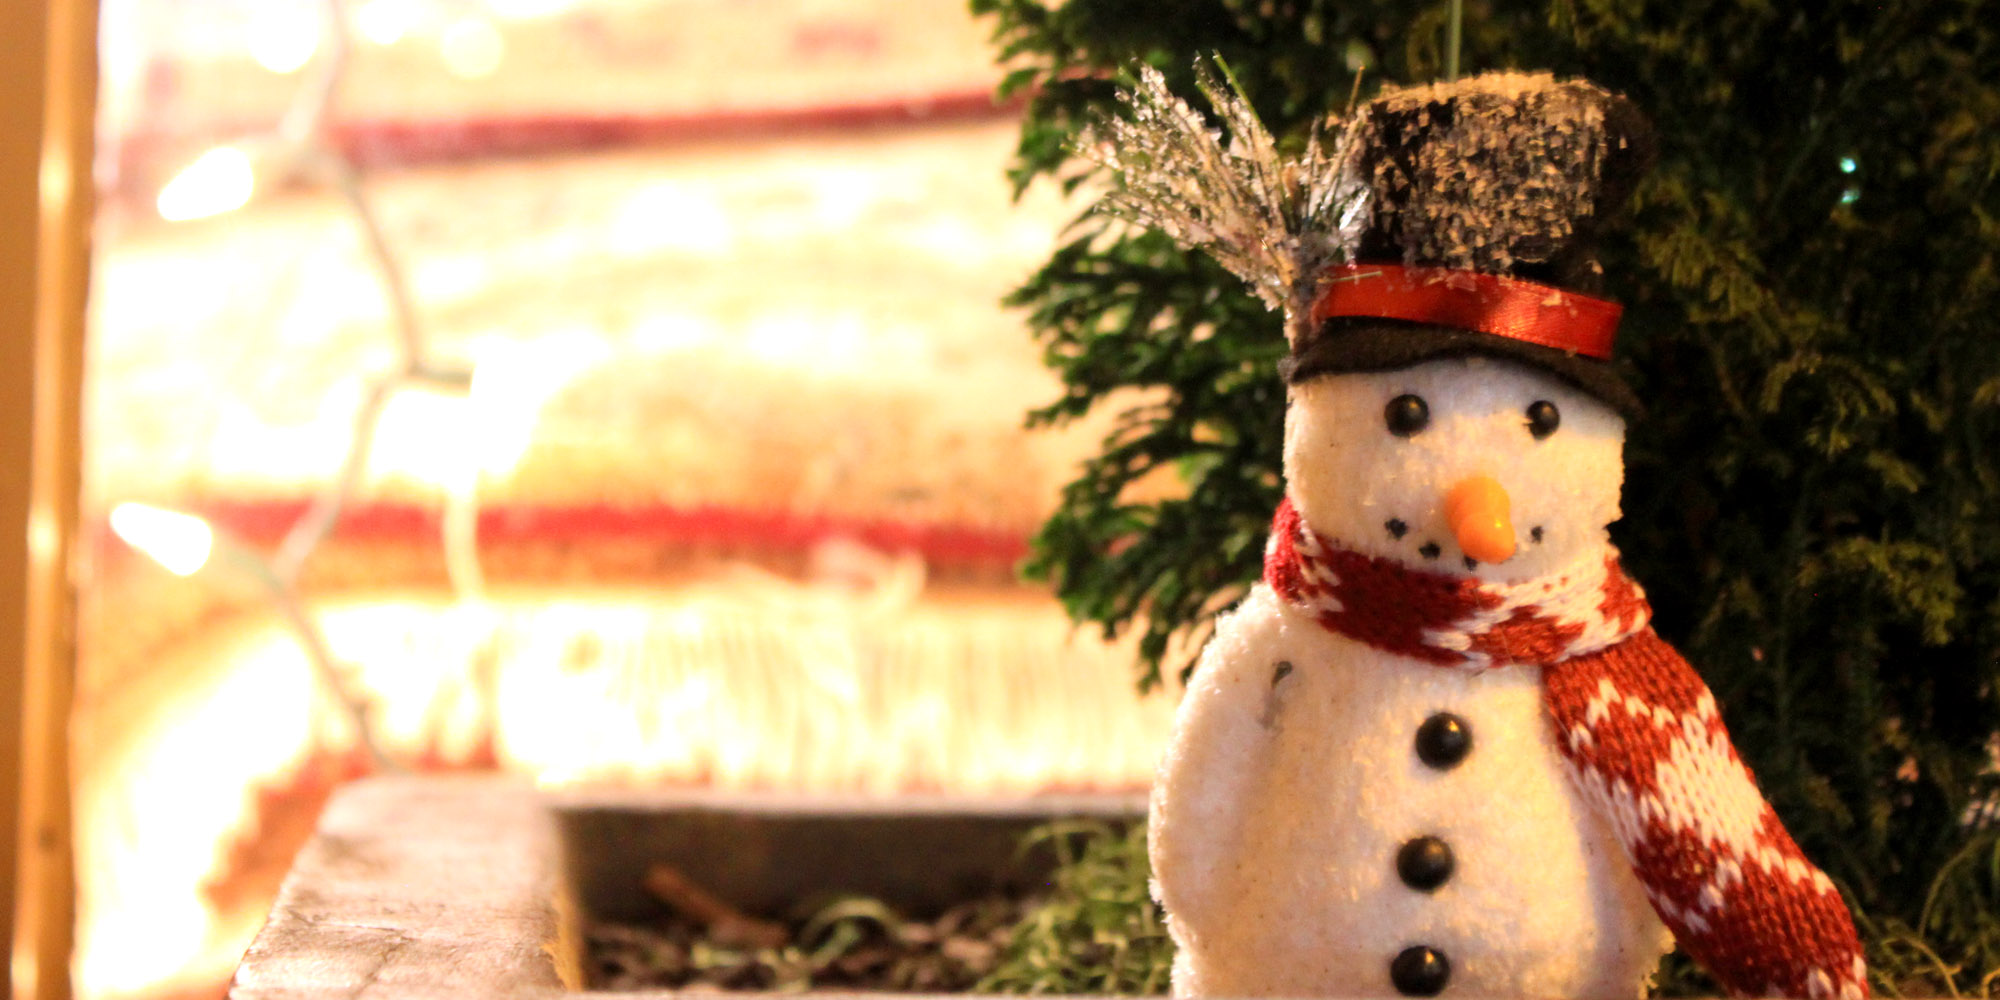 snowman in window box